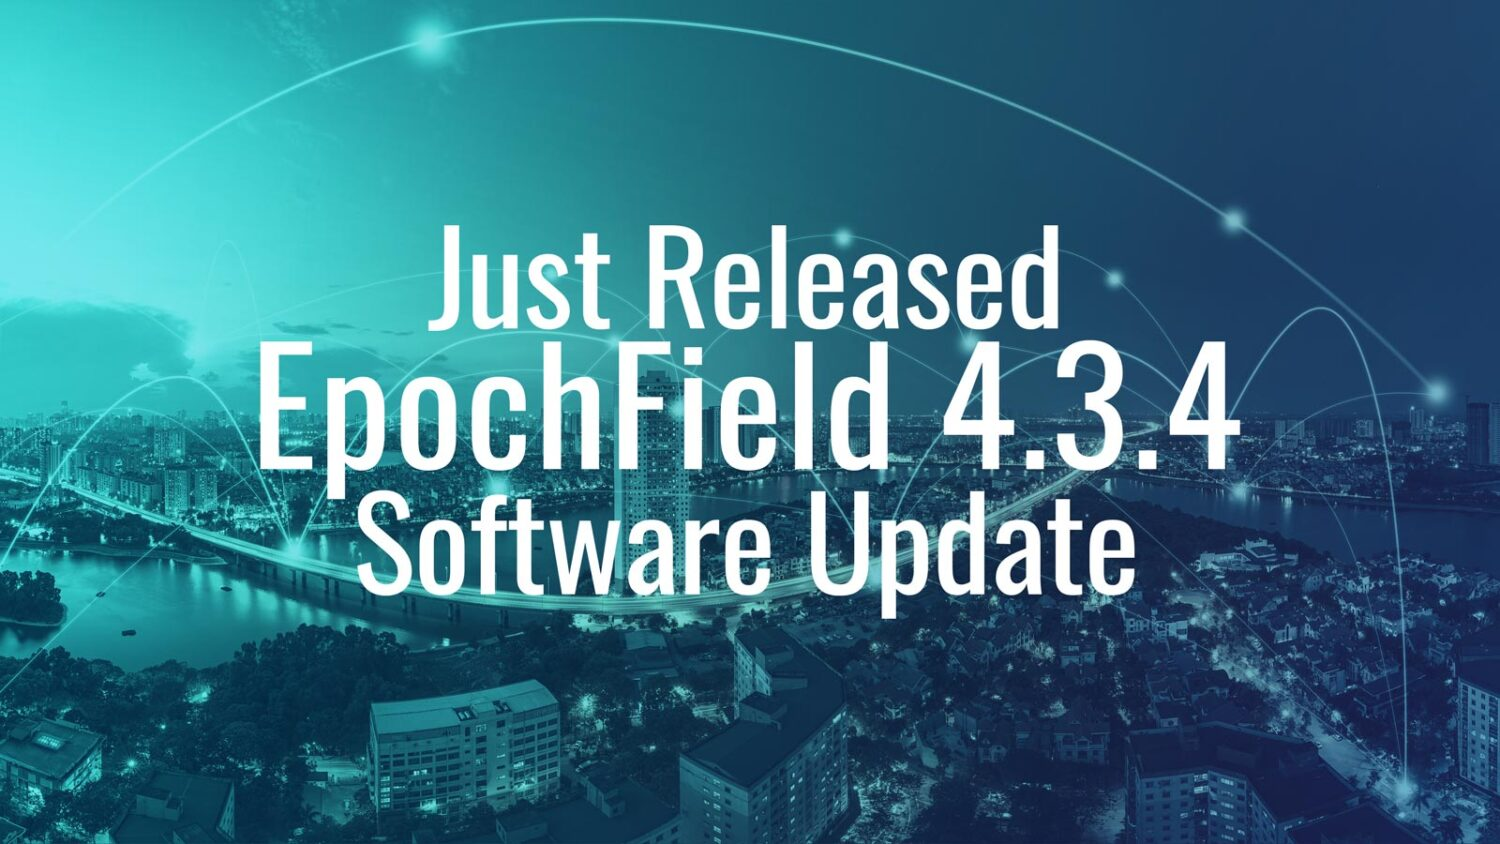 Just Released: EpochField 4.3.4